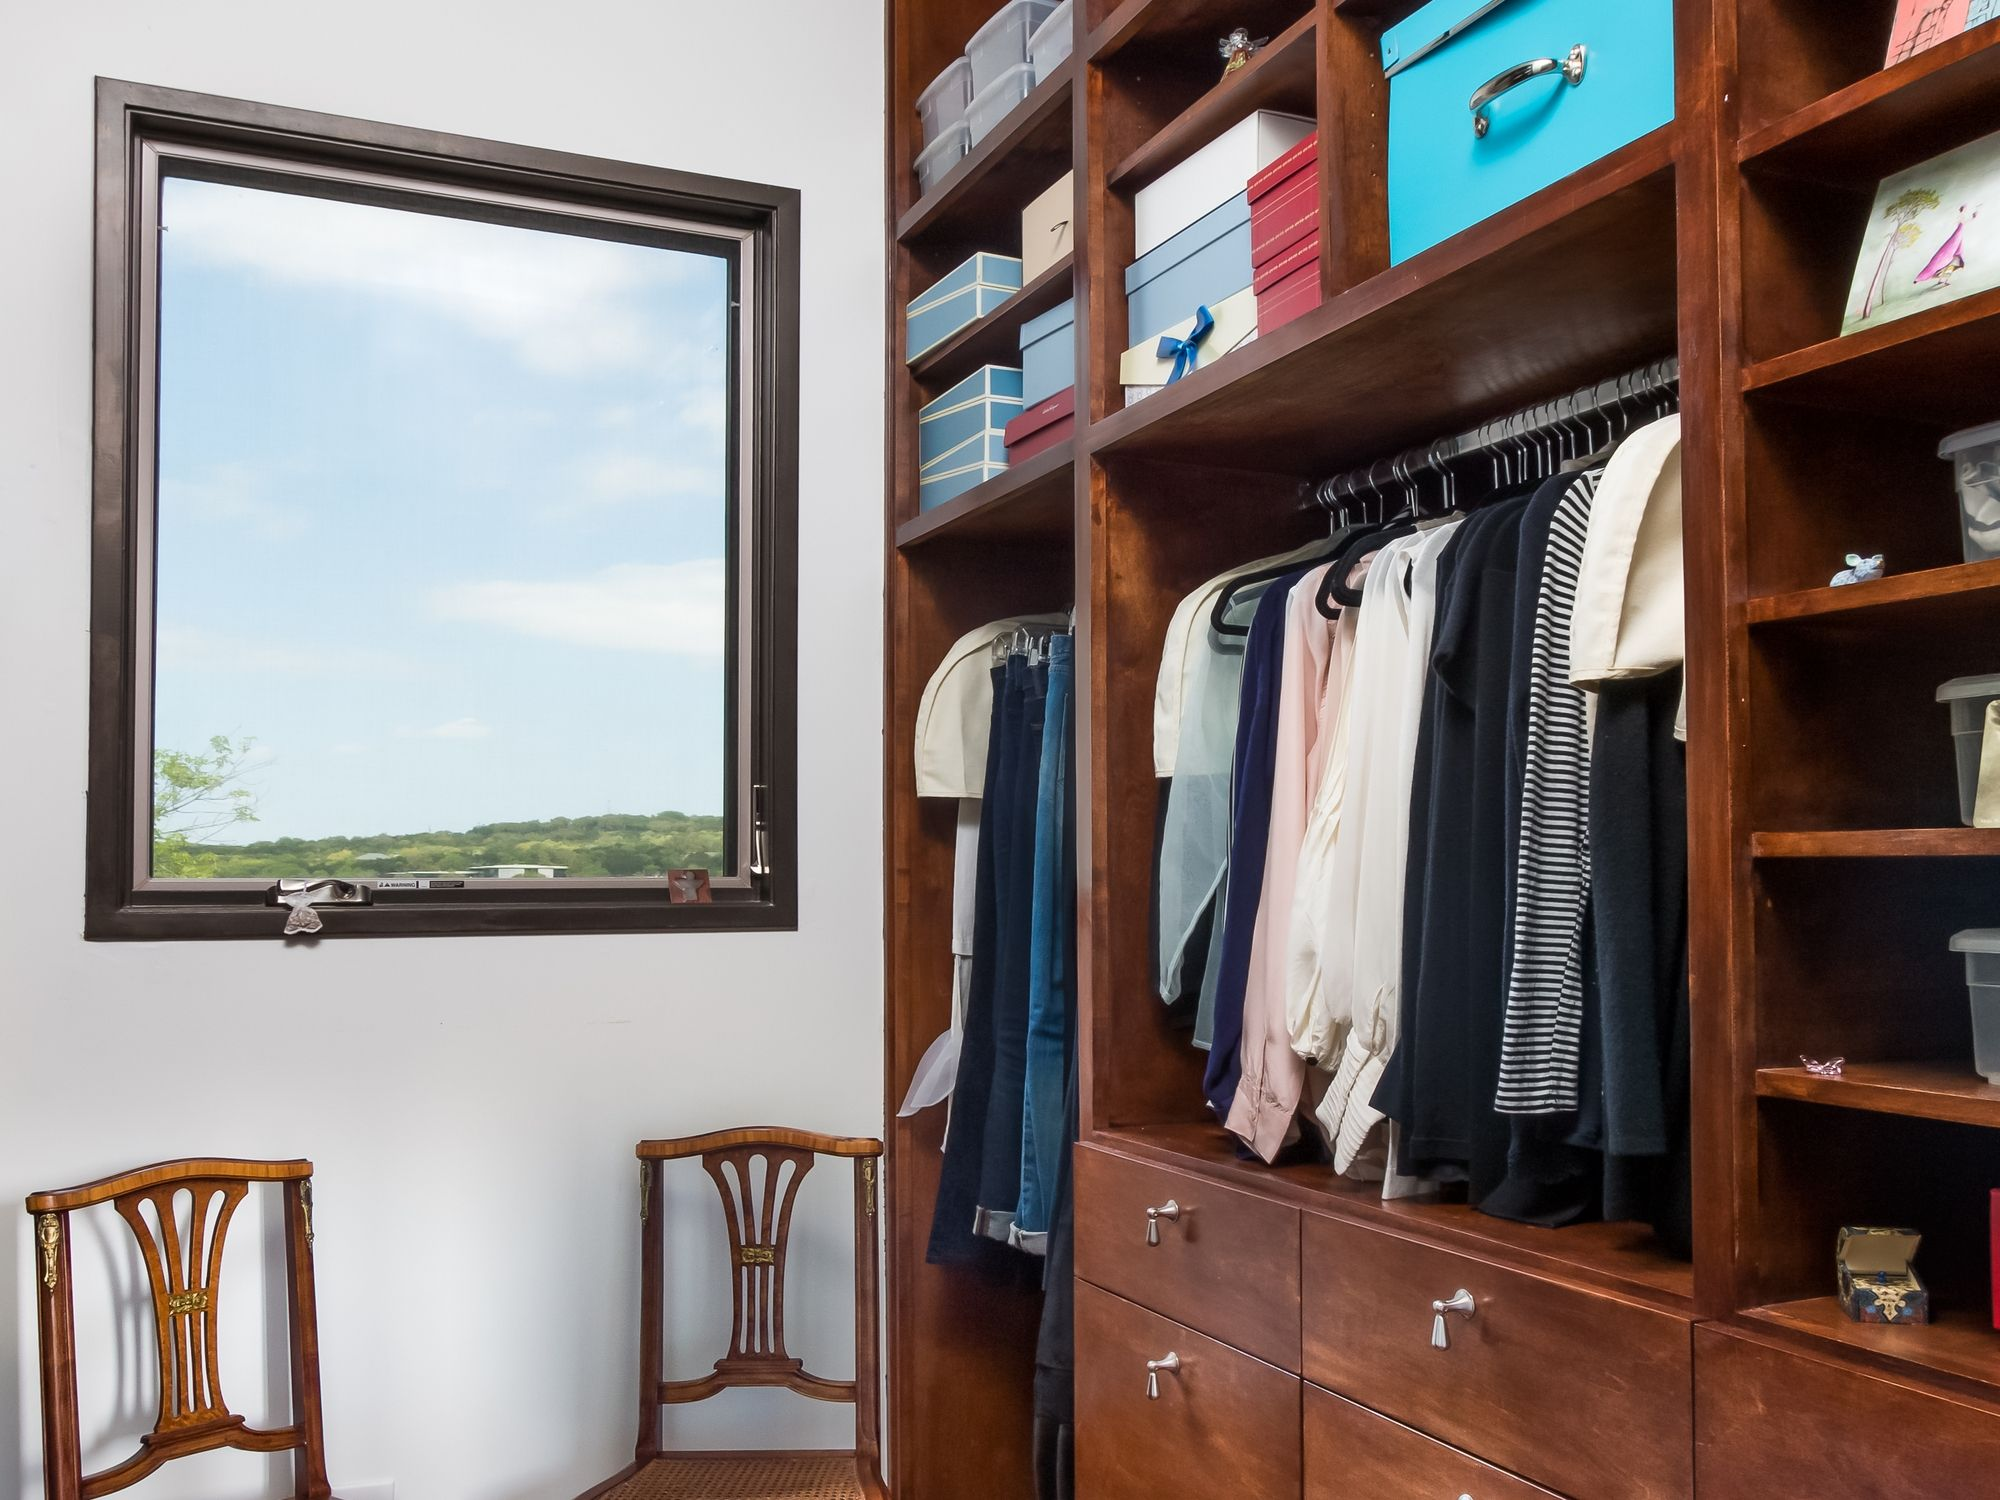 Closet With A View - 8942 Wimberly Cove - Upscale